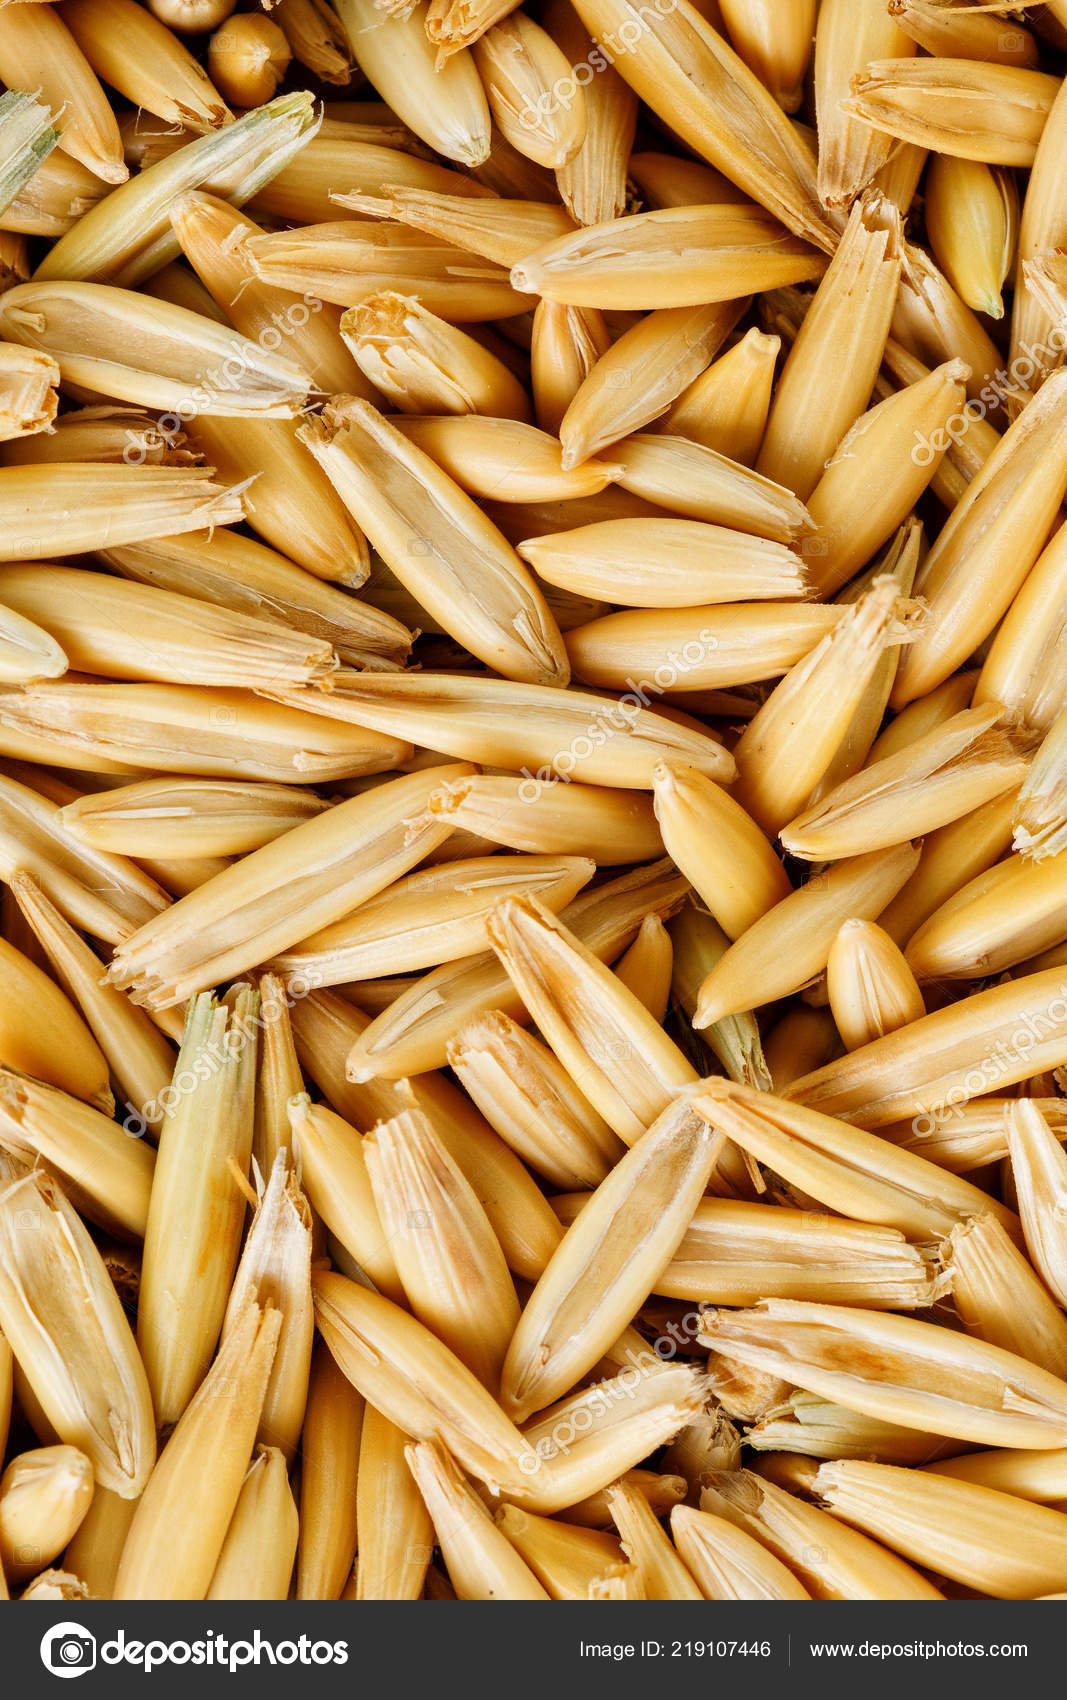 hight resolution of natural oat grains background closeup vegetarian food photo by alex1 3